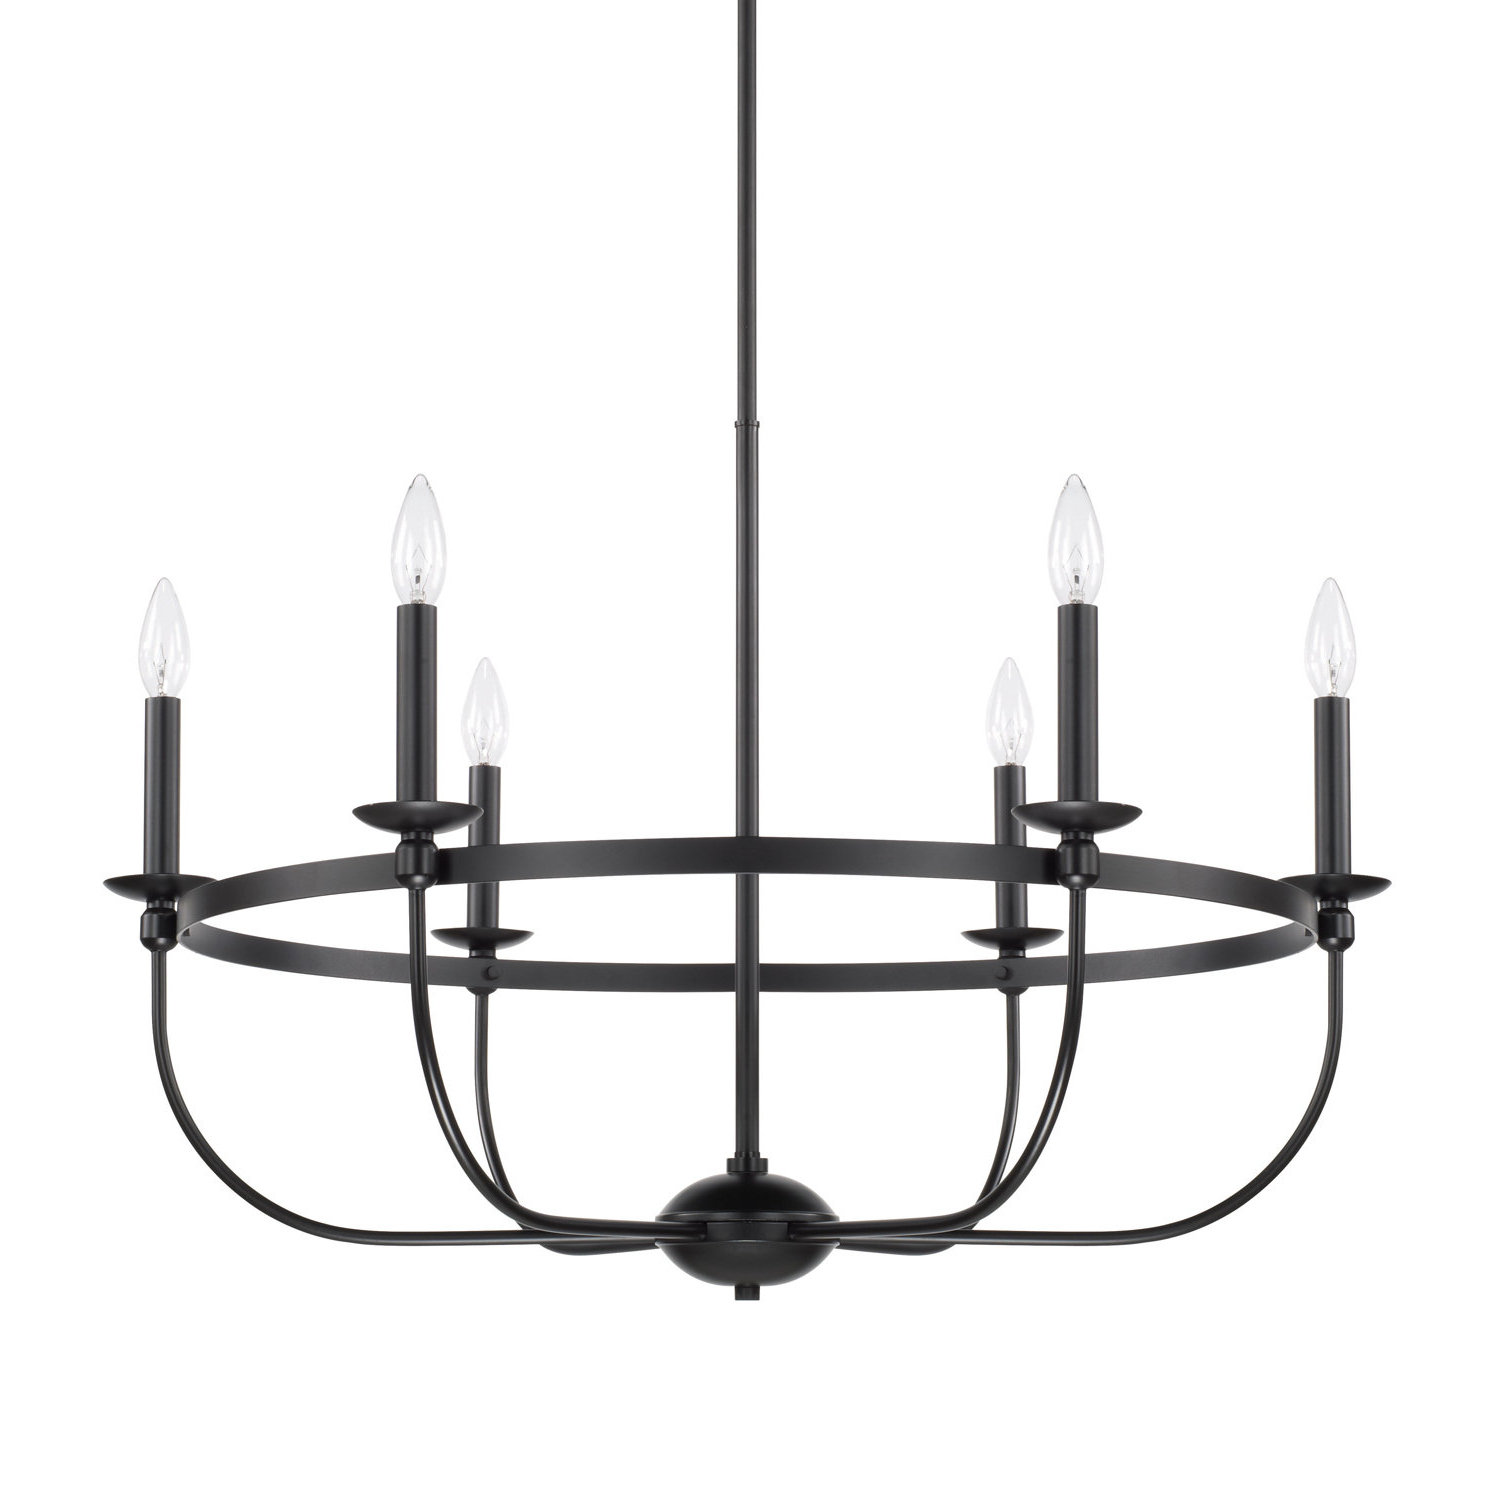 Bennington 6 Light Candle Style Chandeliers Pertaining To Famous Gracie Oaks Claughaun 6 Light Candle Style Chandelier (Gallery 15 of 20)